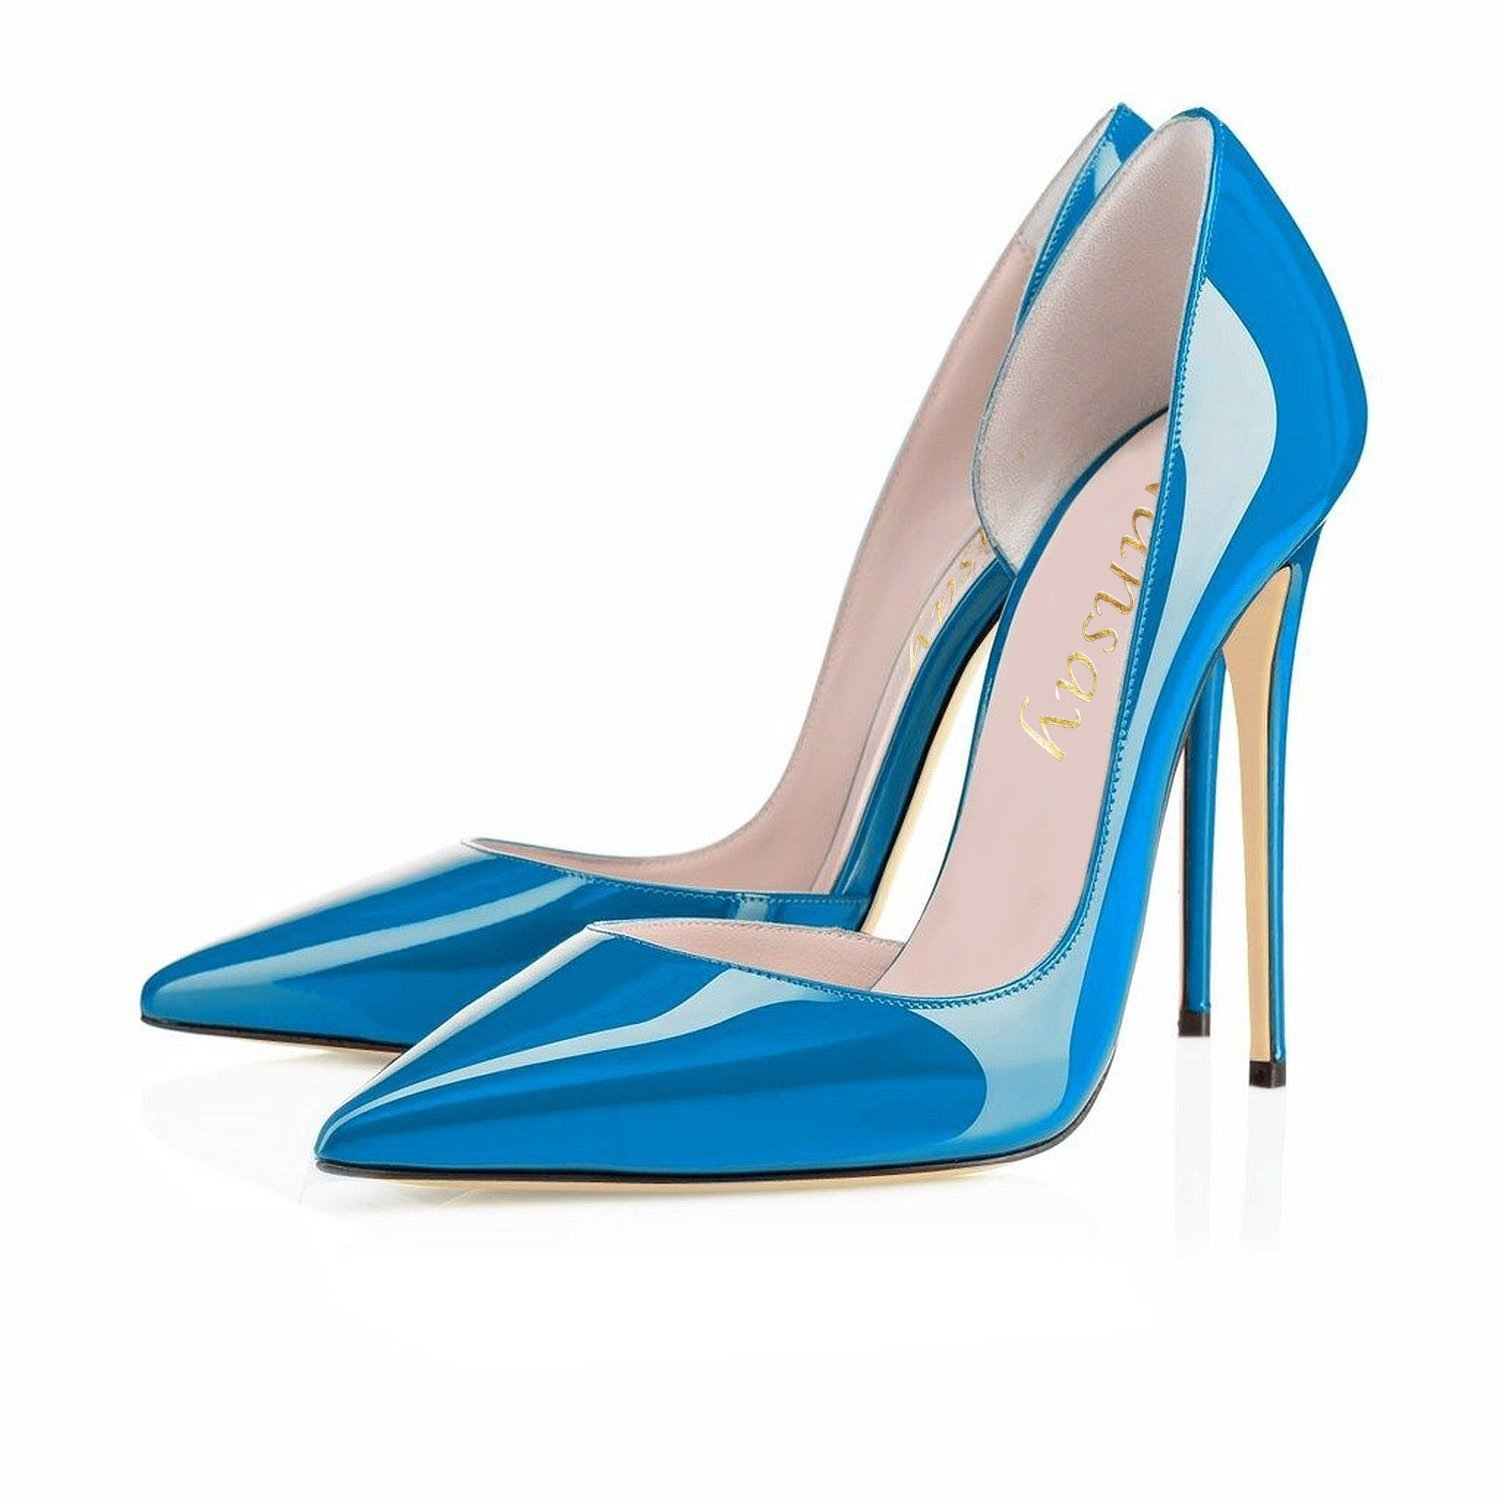 Nansay Women's Shoes Big Size Size Size D'Orsay&Two-Piece Ladies Shoes Solid Pointed Toe High Heels Pumps For Party B01NCJ1YS2 4|Blue 10ff4d